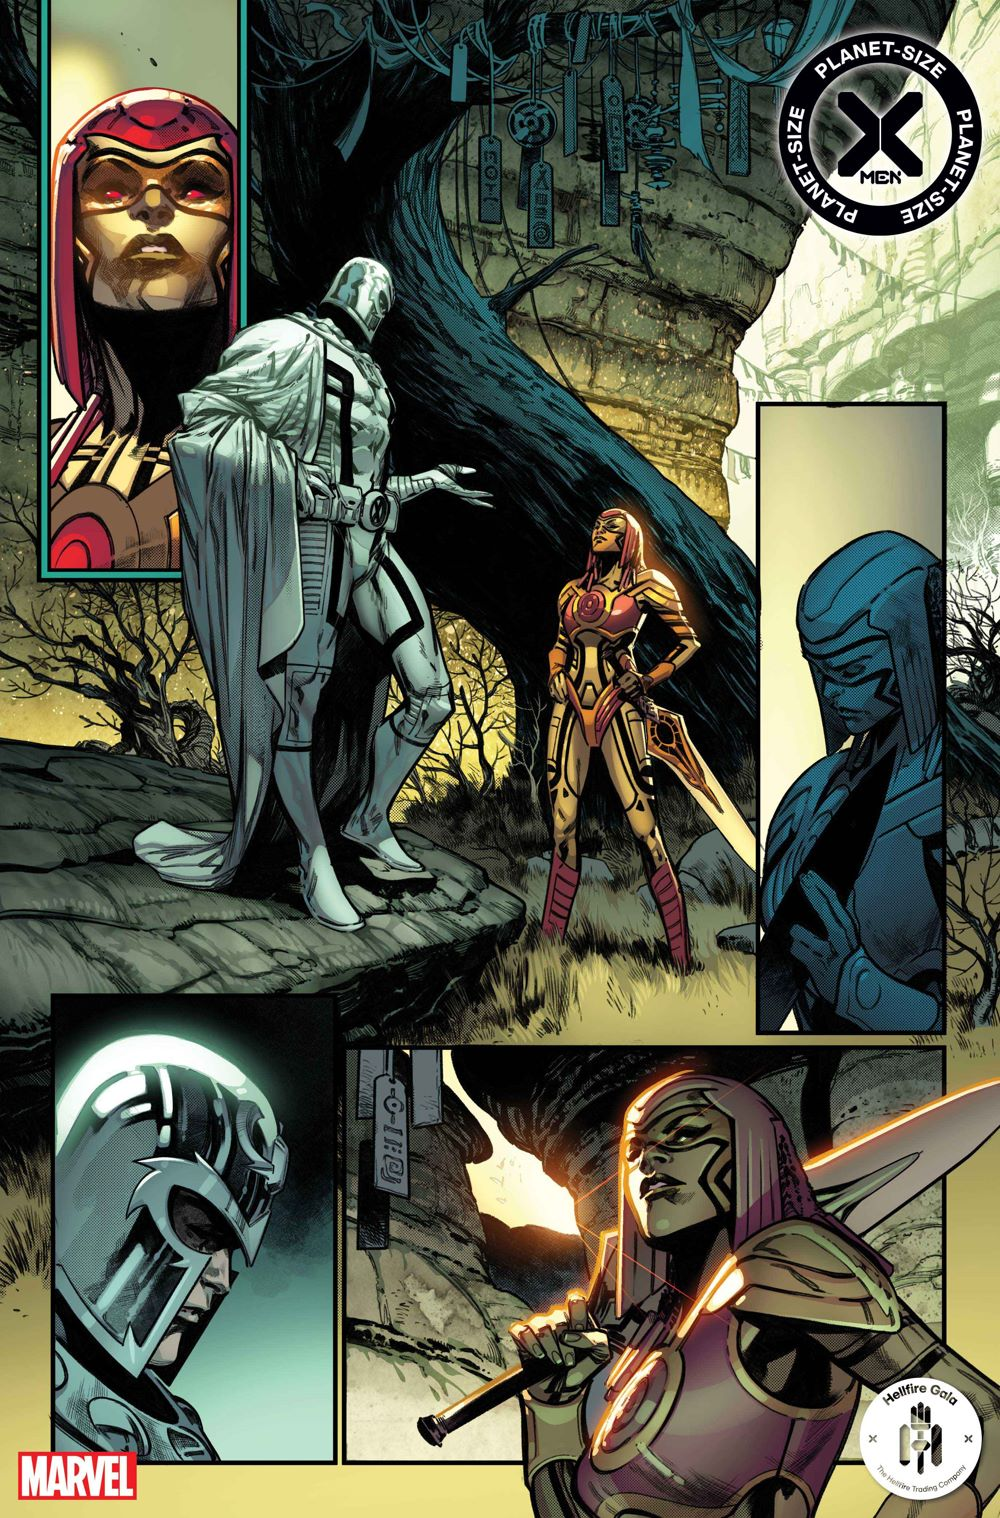 PSXMEN2021001_Interior1 First Look at PLANET-SIZE X-MEN #1 from Marvel Comics